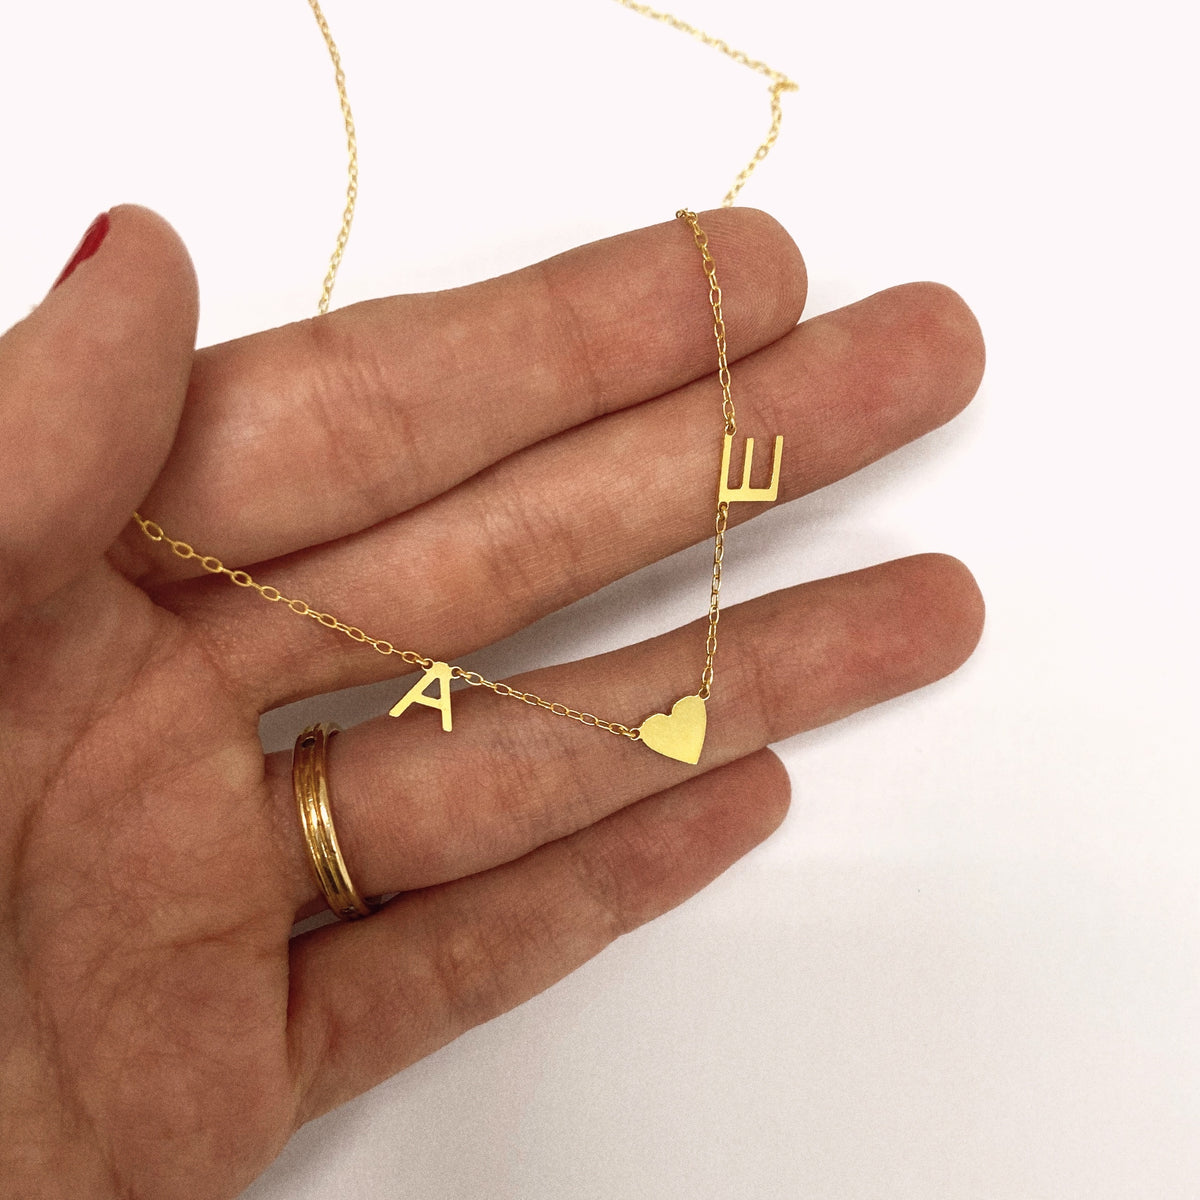 Oui Love Necklace - Solid Gold